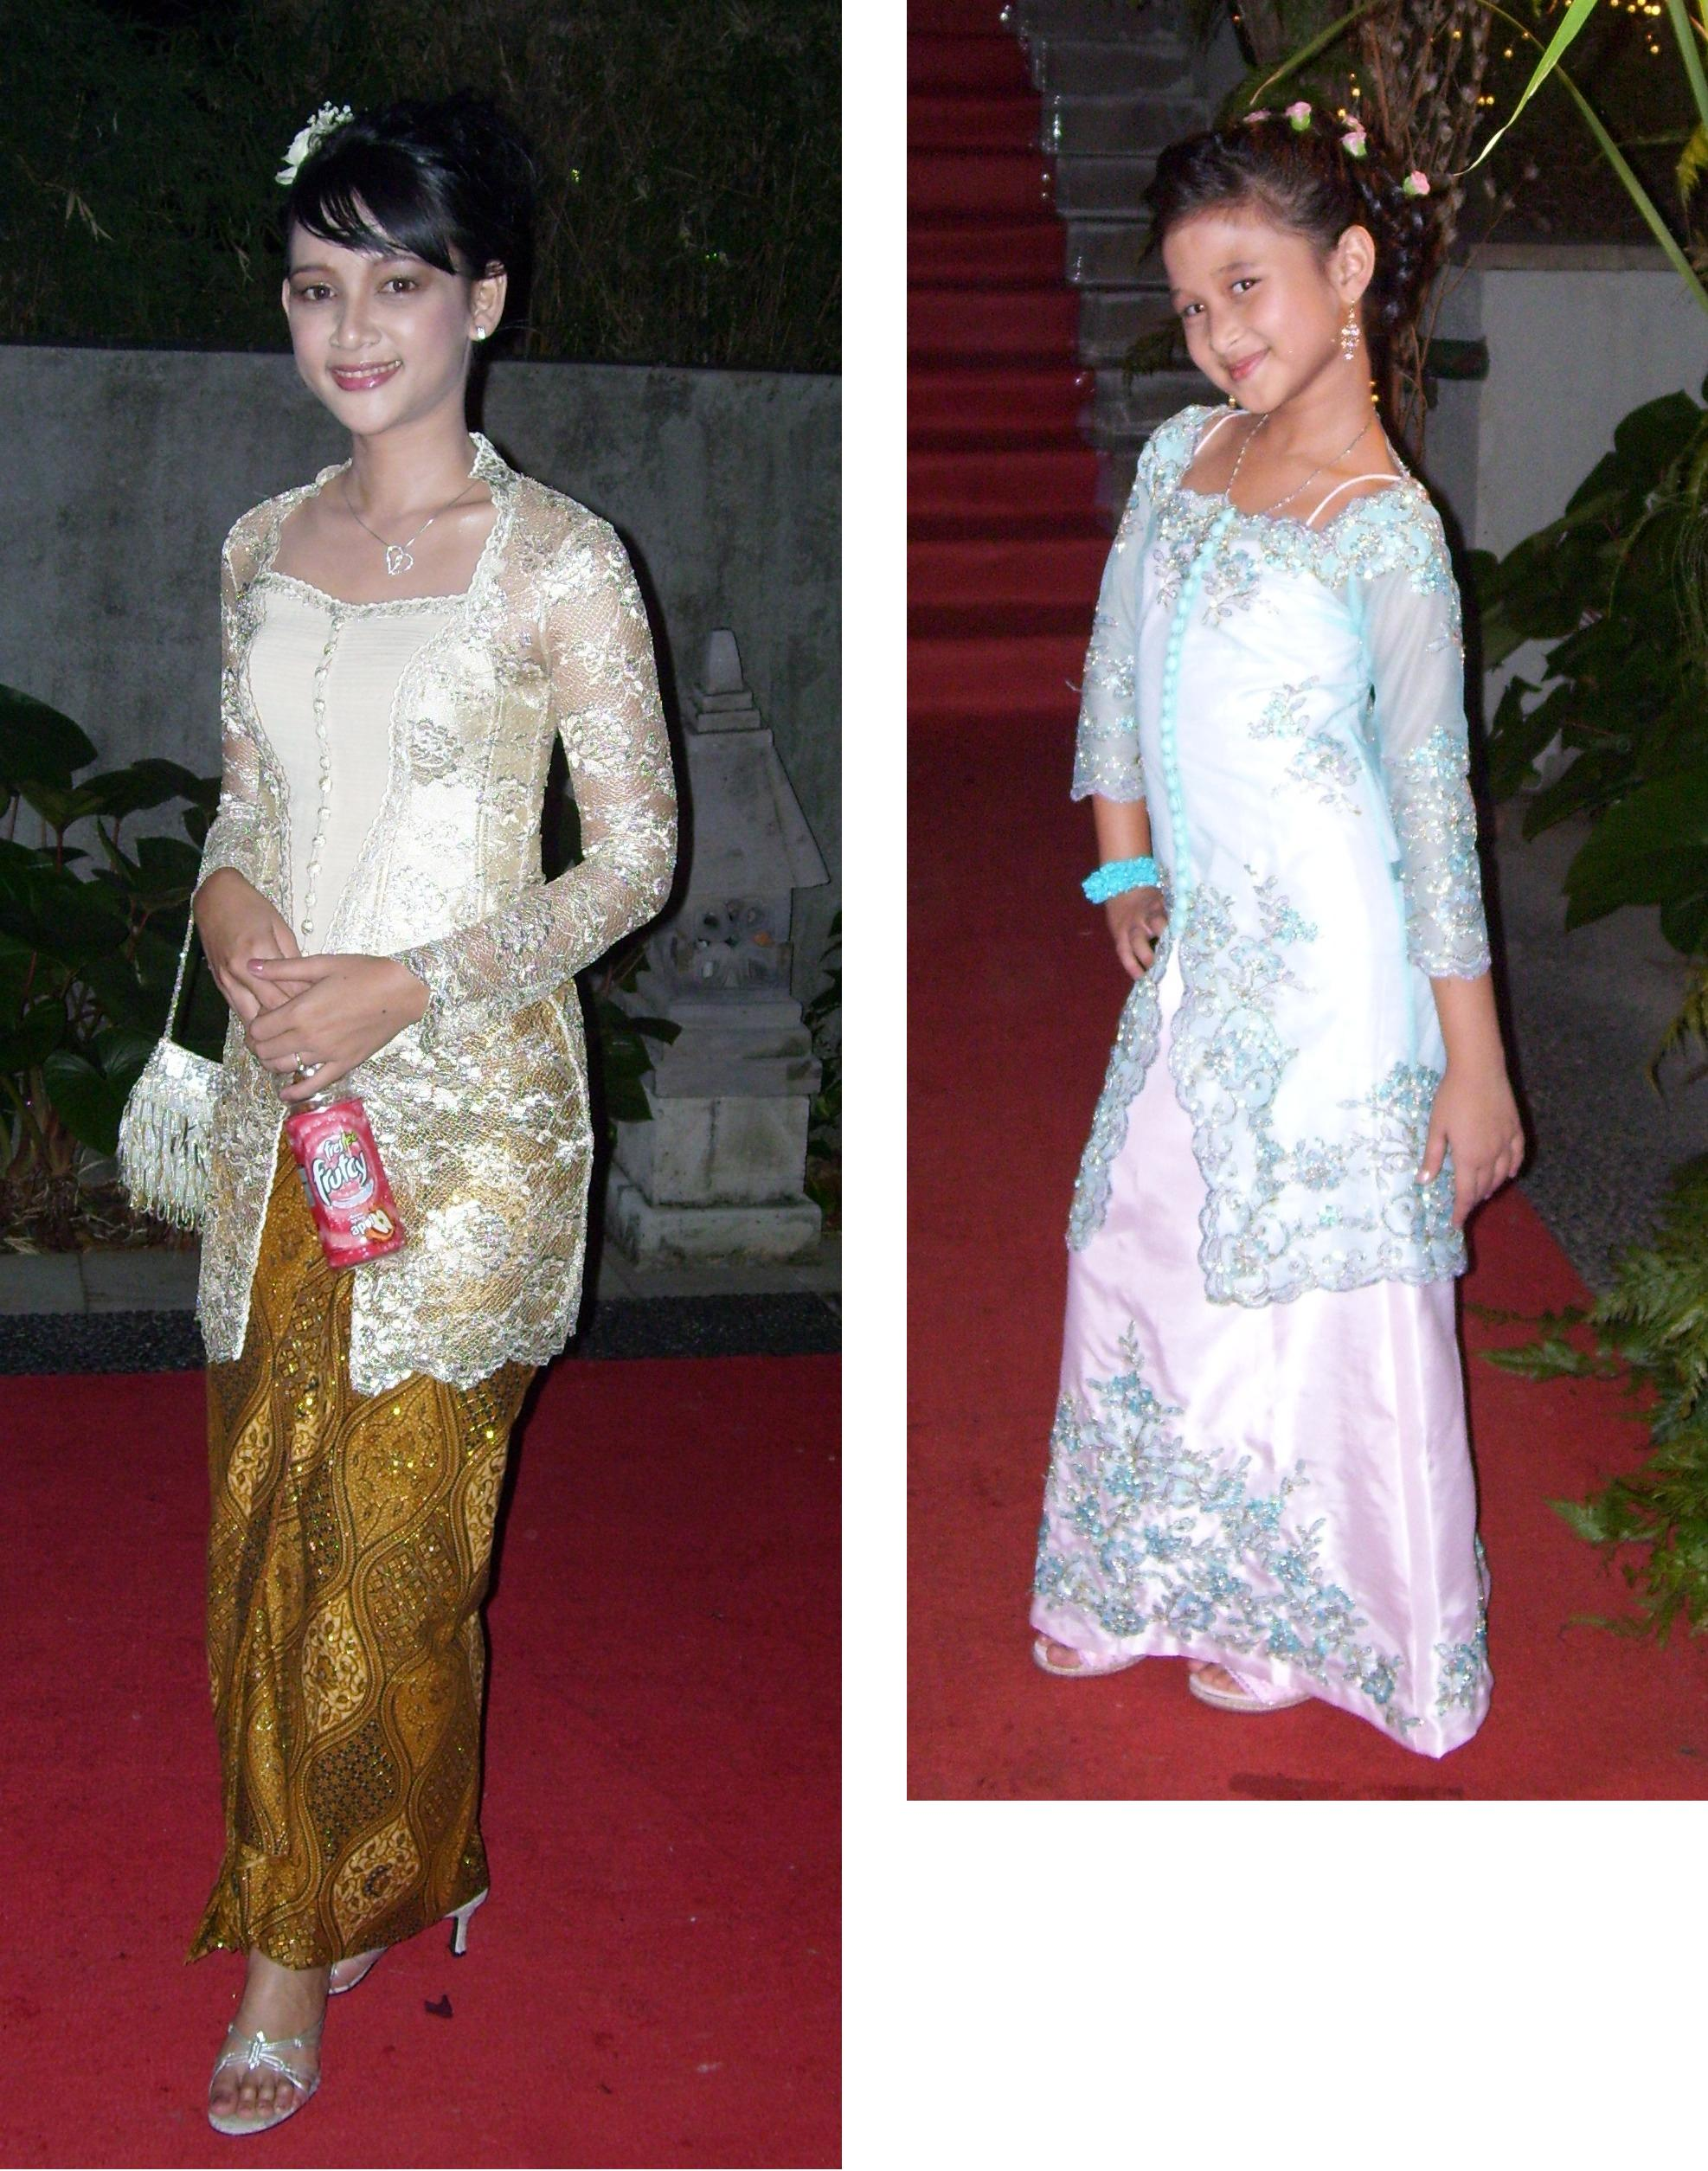 Great Model Baju Kebaya Modern 1974 x 2509 · 586 kB · jpeg